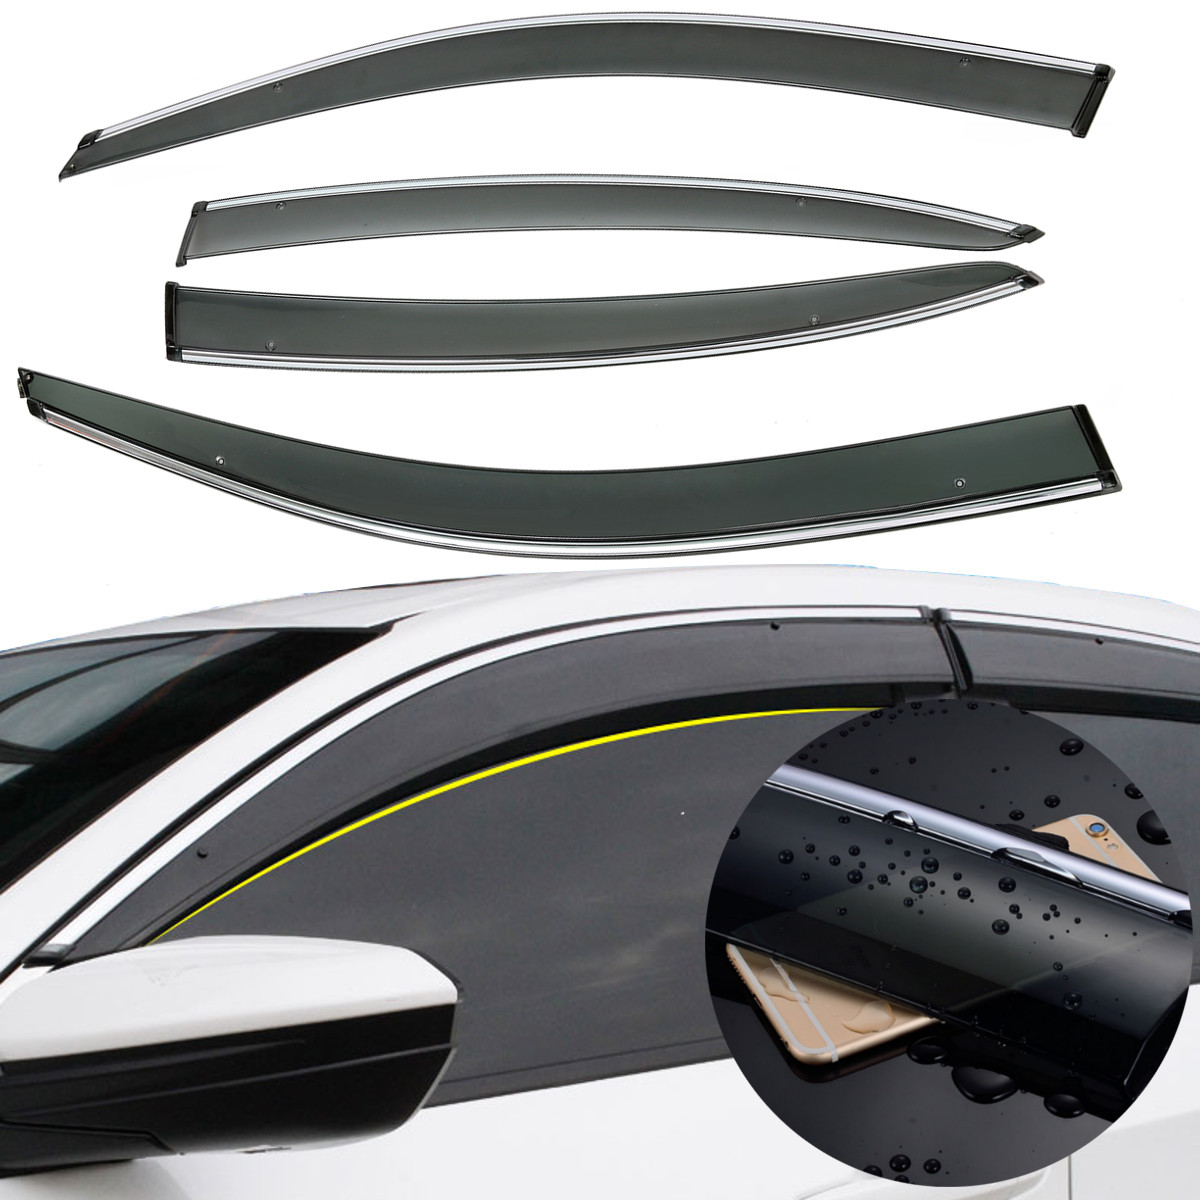 4Pcs/Set Auto Awnings Shelters Accessories Car Window Vent Visor Wind Deflector Durable Rain Sun Guard For VW For Polo/ 2009 for suzuki jimny car window visor wind deflector rain sun visor shield cover abs awnings shelters cover car accessory 2007 2015